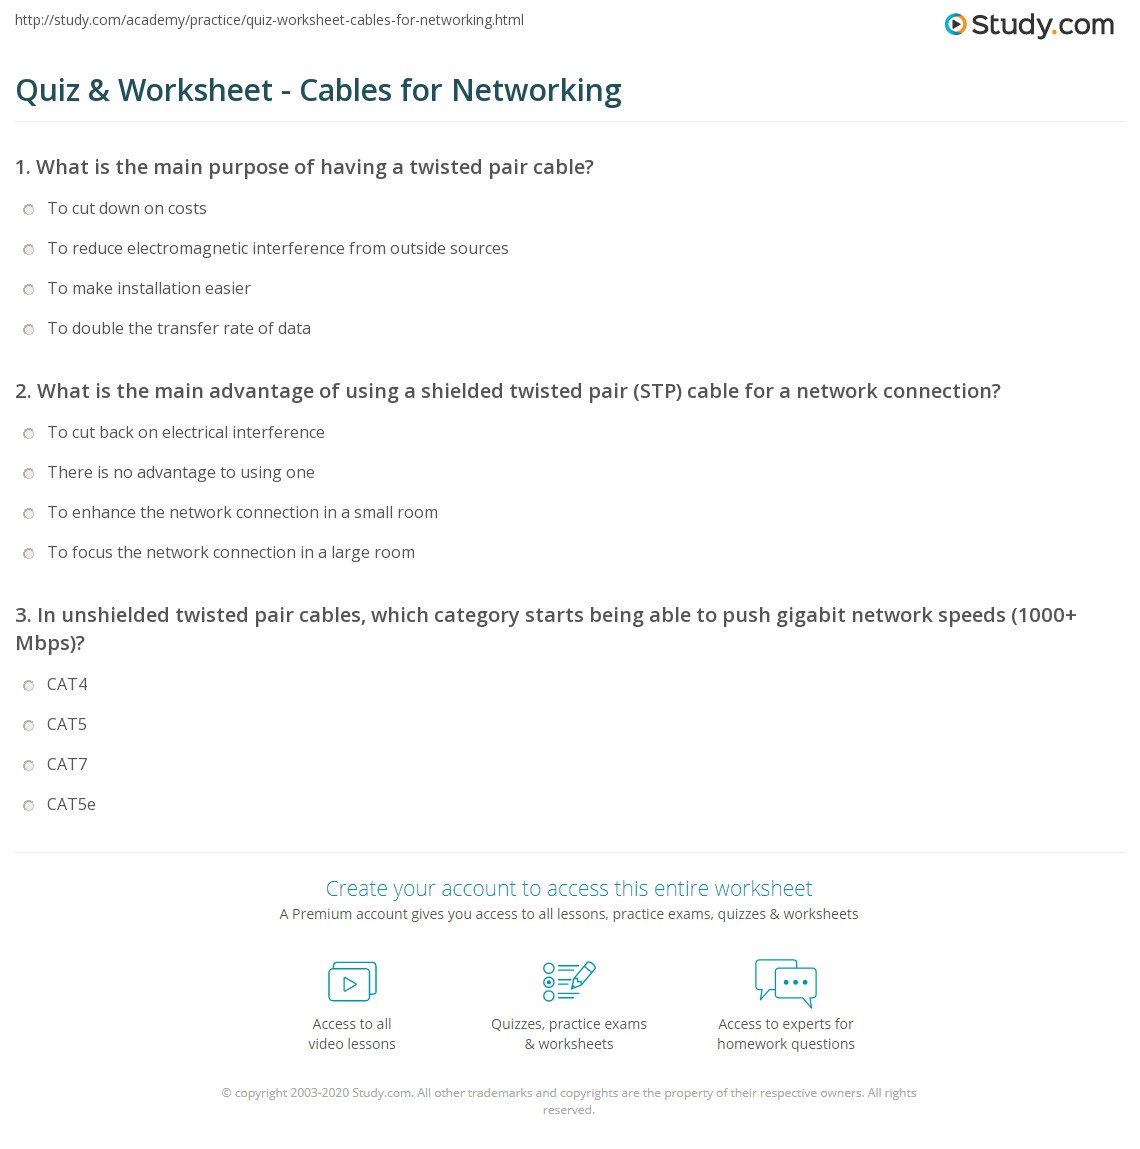 Quiz Worksheet Cables For Networking Twisted Pair Wiring What Is The Main Advantage Of Using A Shielded Stp Cable Network Connection